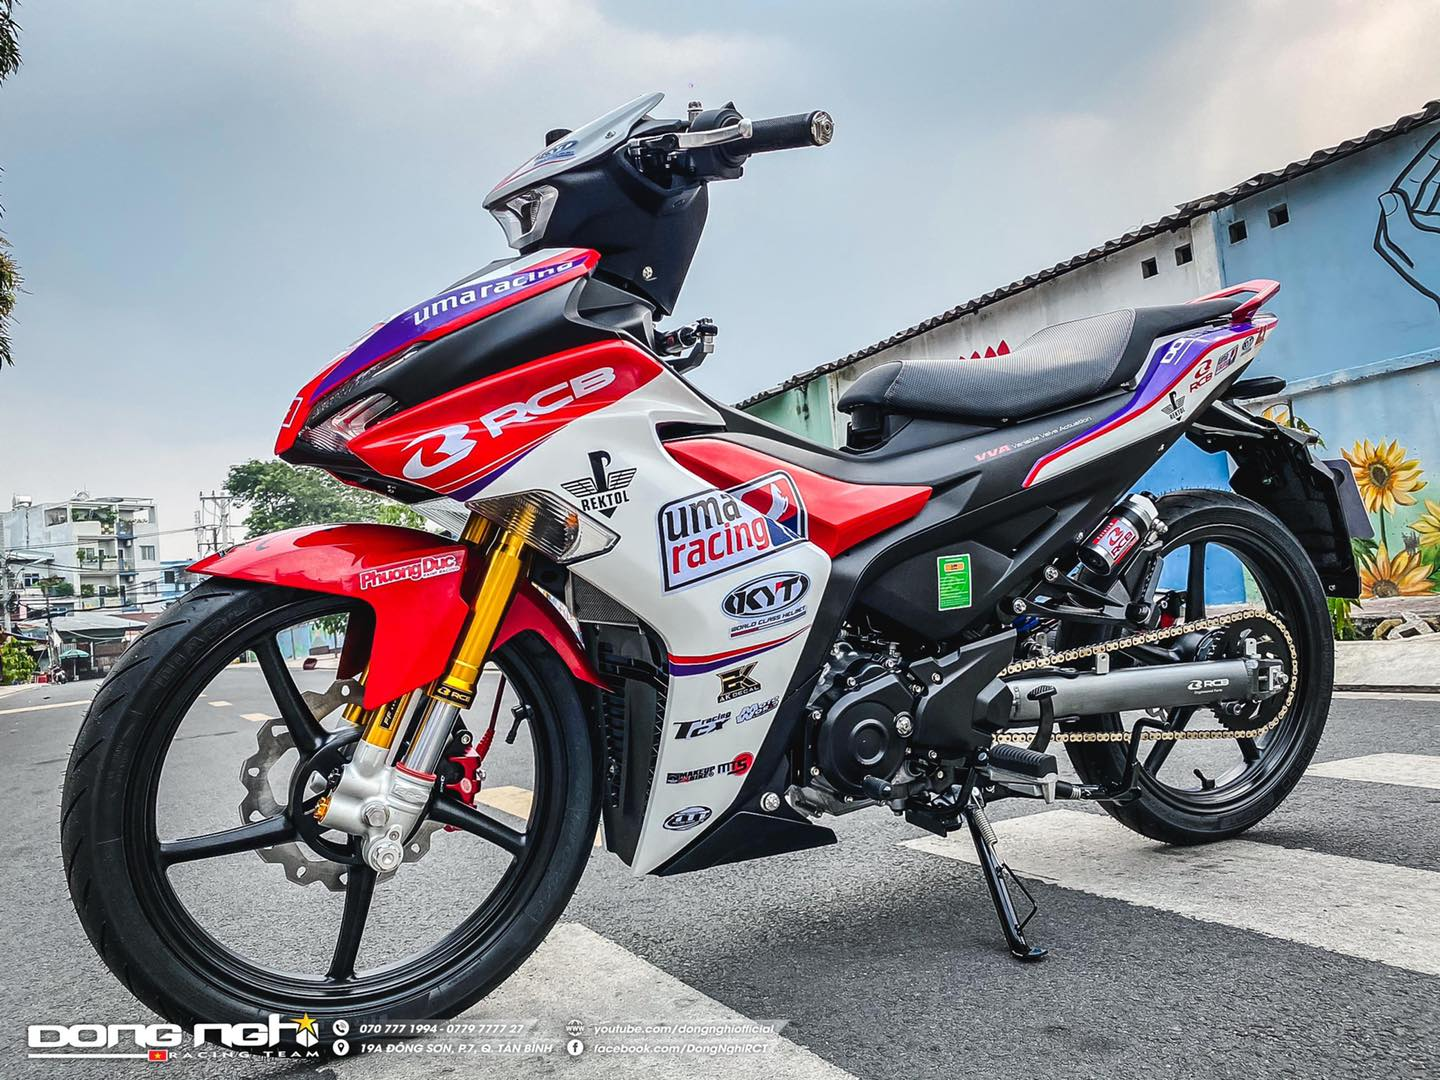 Modif Yamaha MX KING 155 Upside Down RCB Hedon